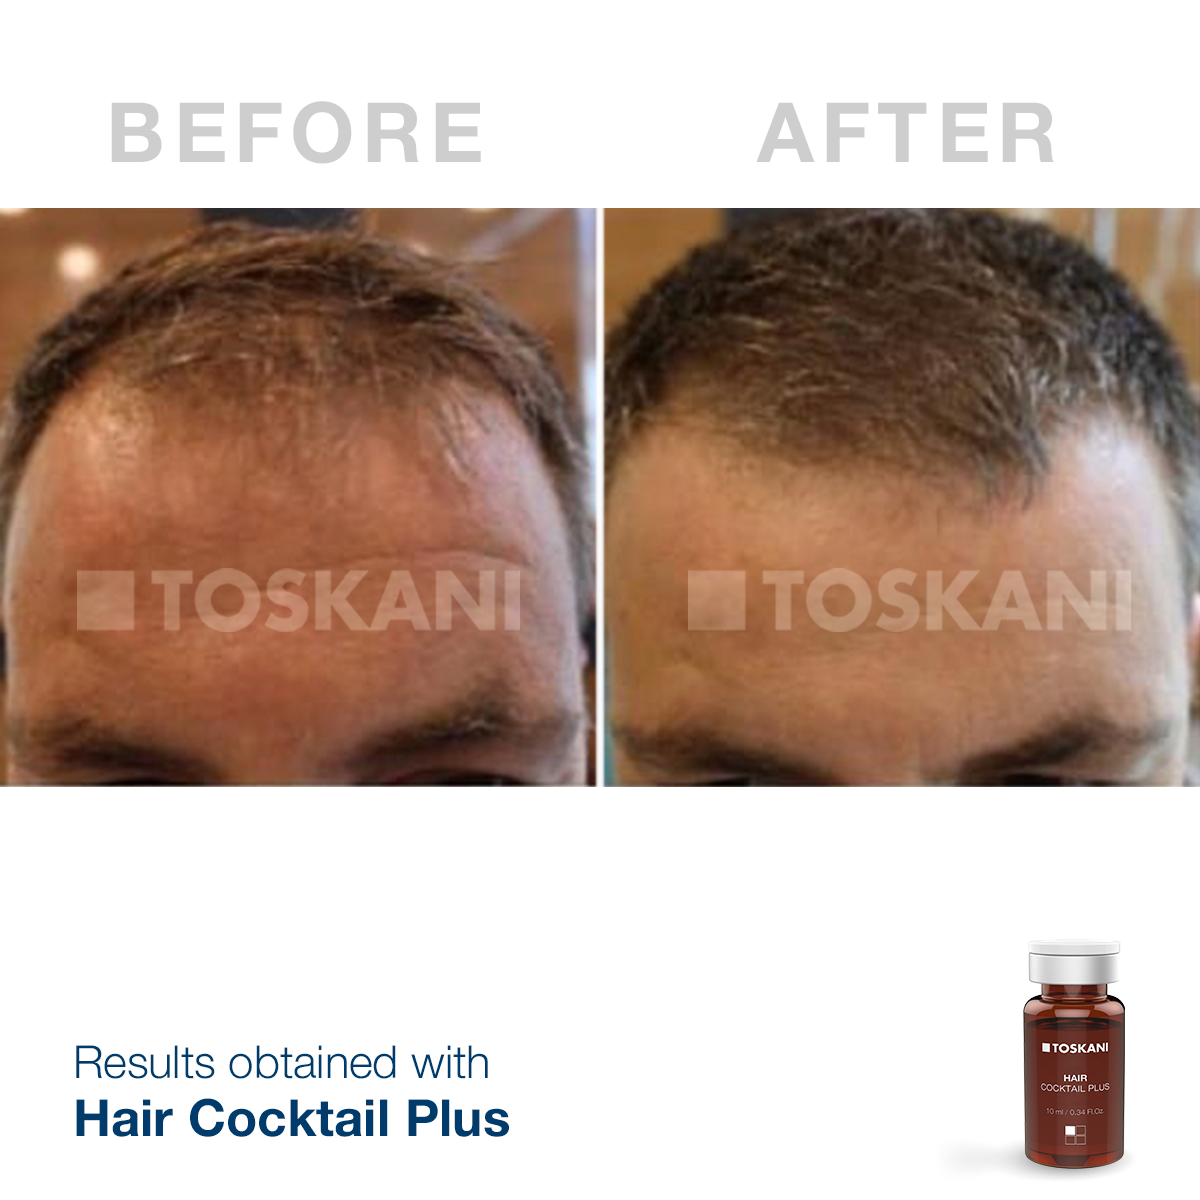 TKN_HairCocktailPlus_before-after